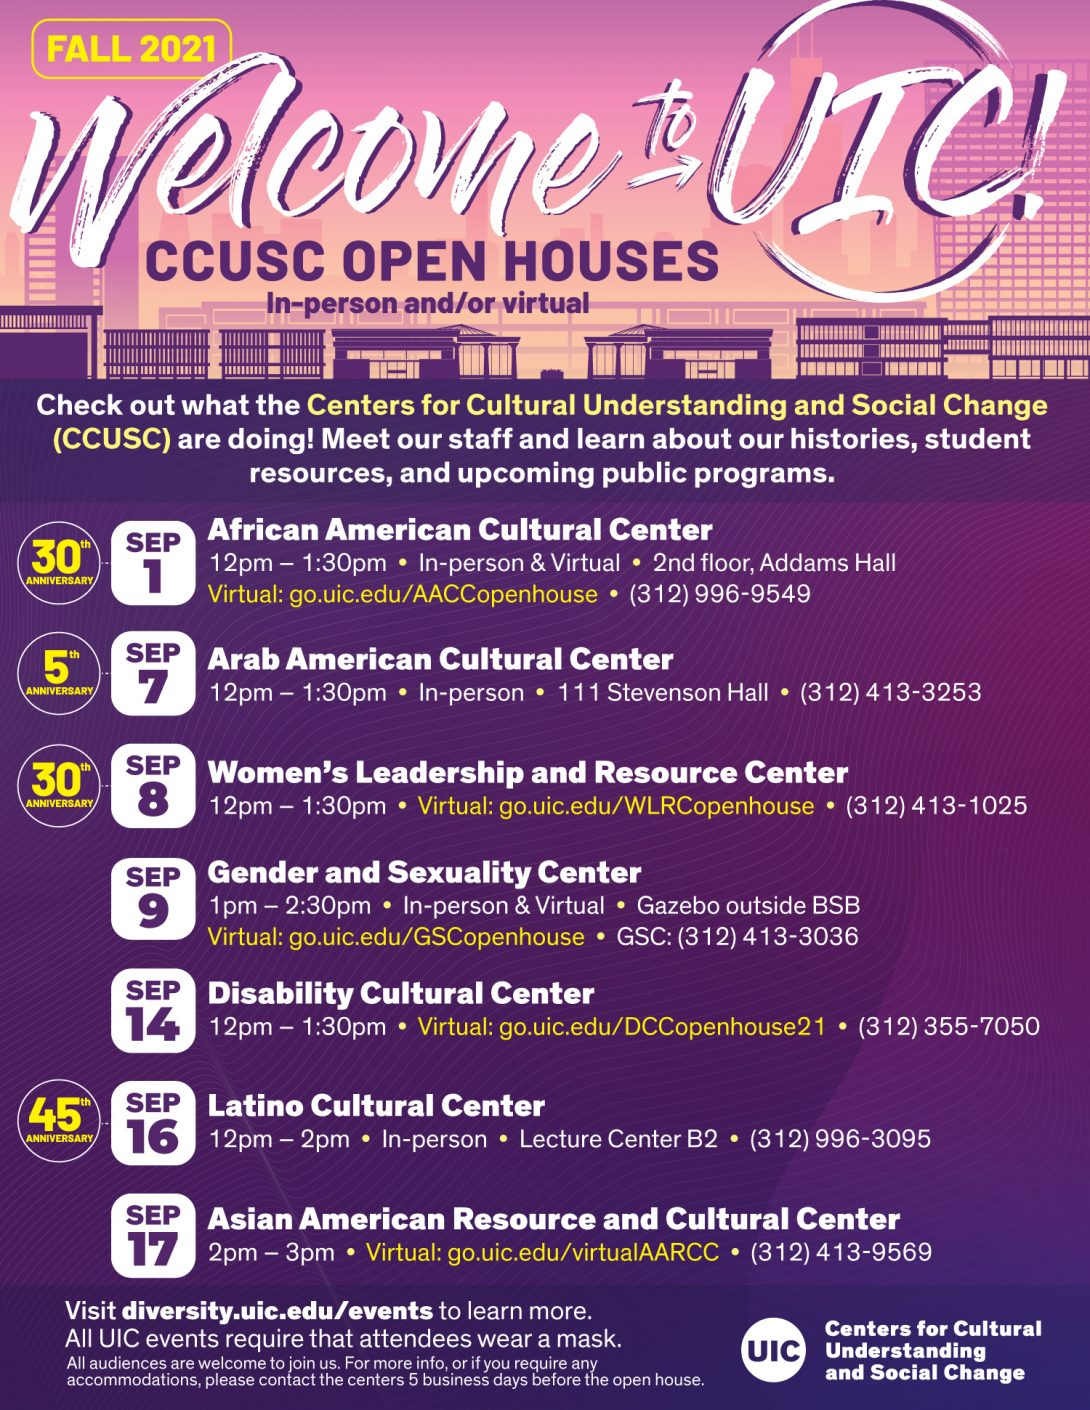 In the banner section, the UIC buildings and Chicago skyline are faded with the words welcome to UIC in a brushed font. Below are the details for the seven cultural center's open houses.